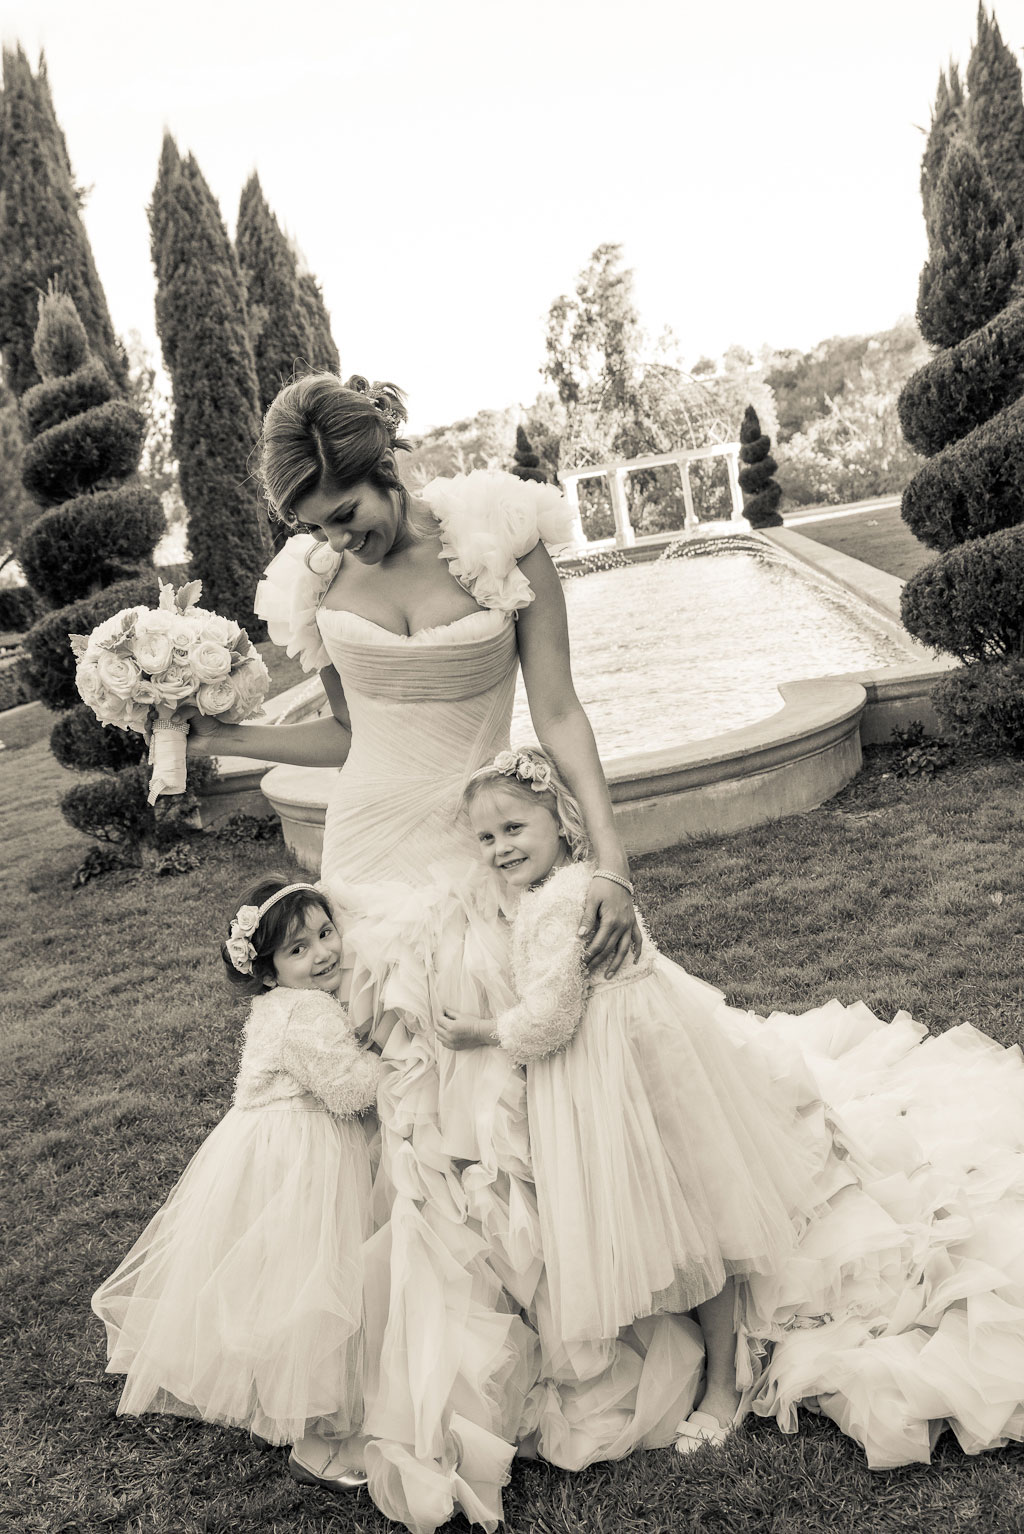 Wedding Photos Adorable Flower Girls Brides Inside Weddings